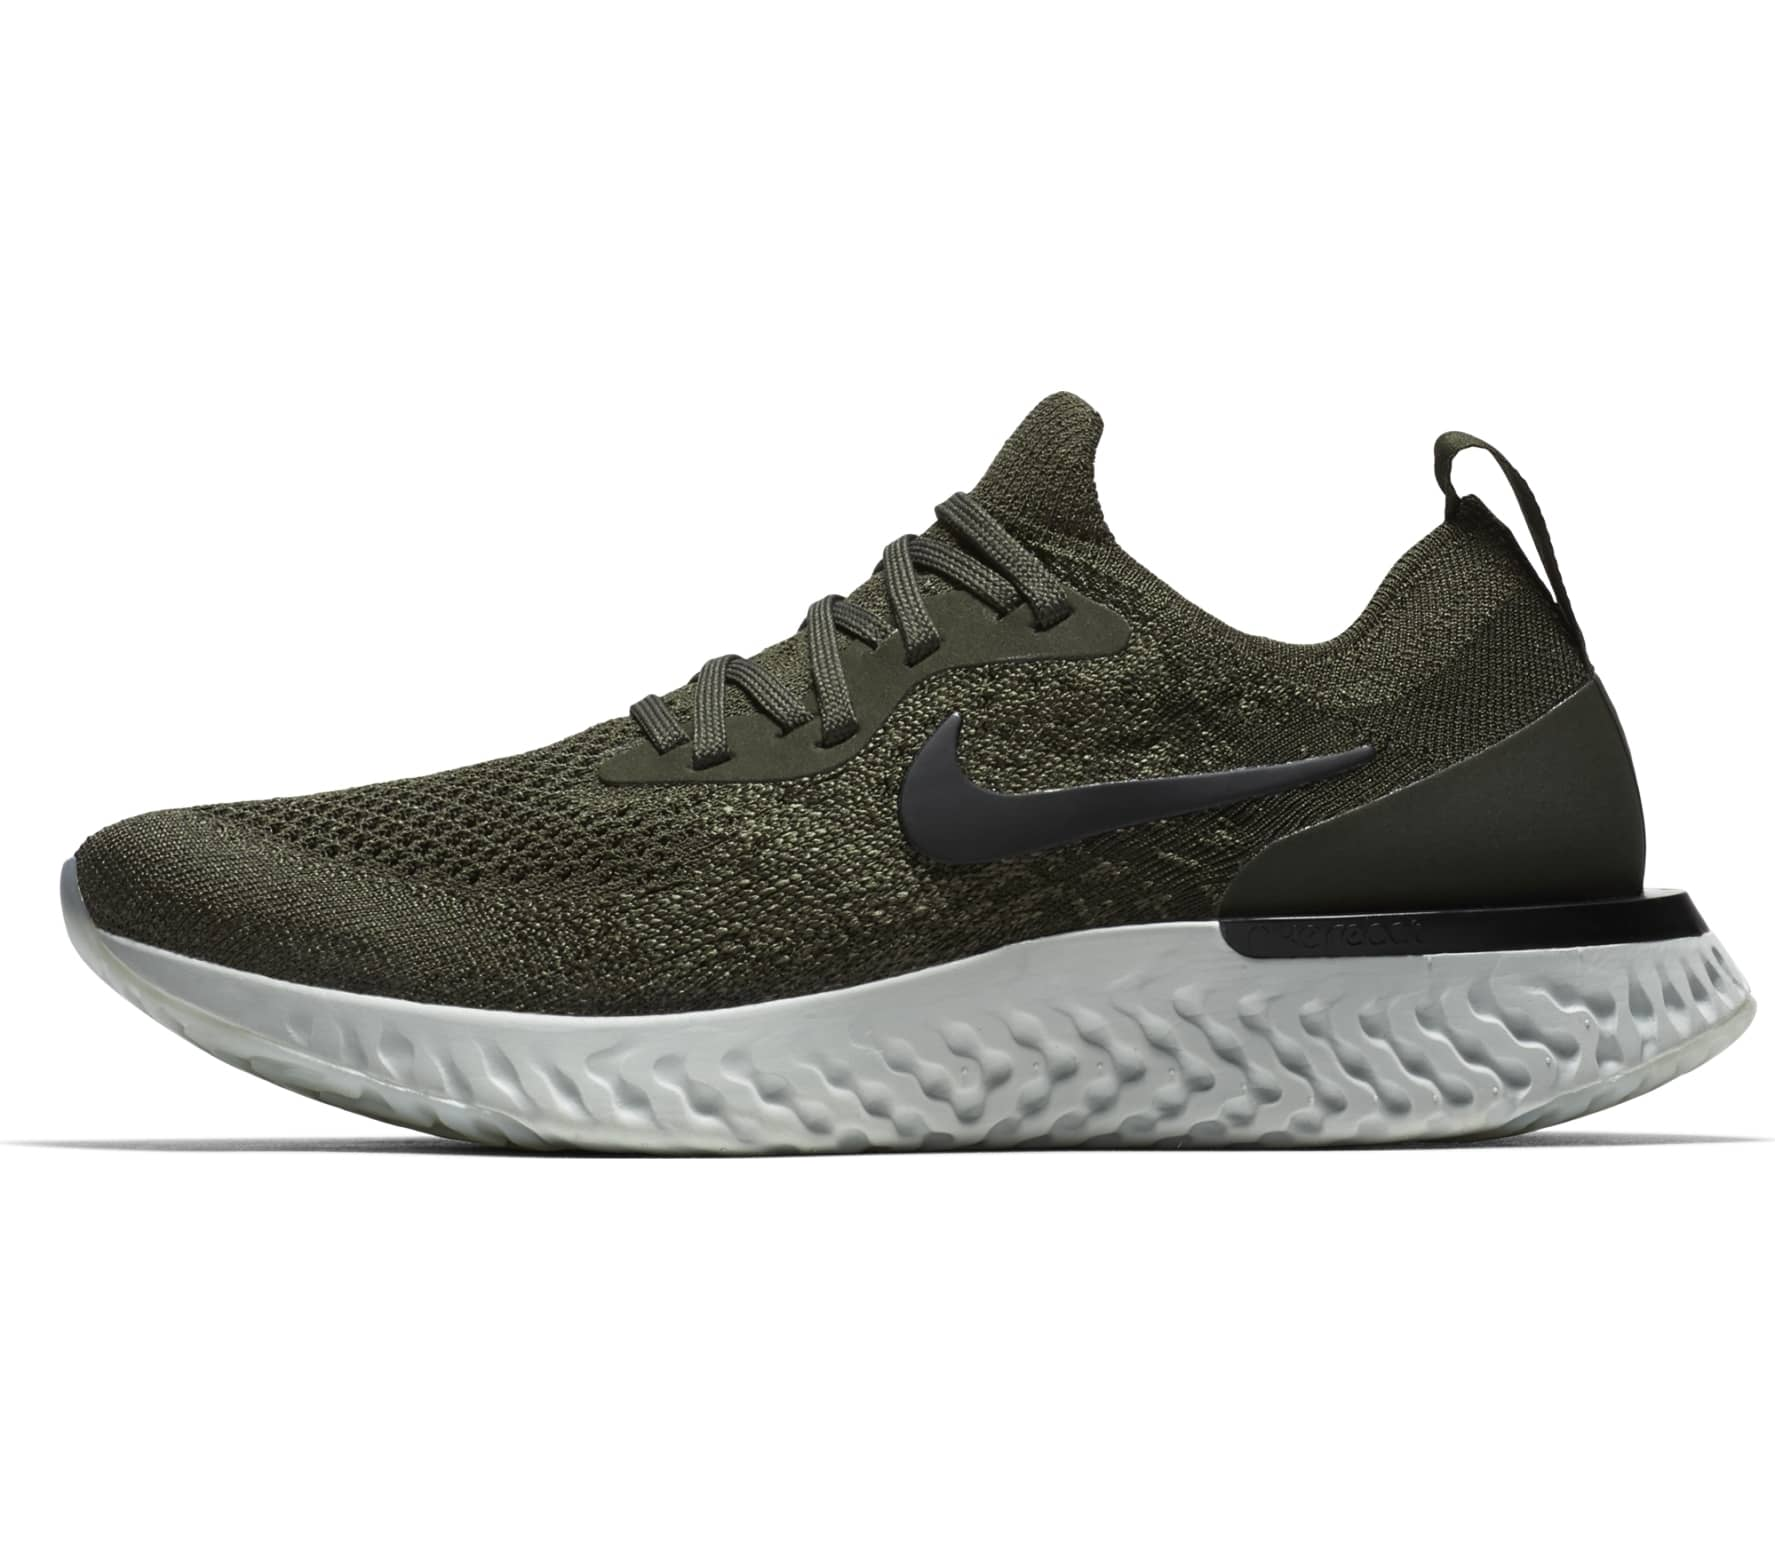 Nike - Epic React Flyknit women s running shoes (matcha) - buy it at ... 11a87099d